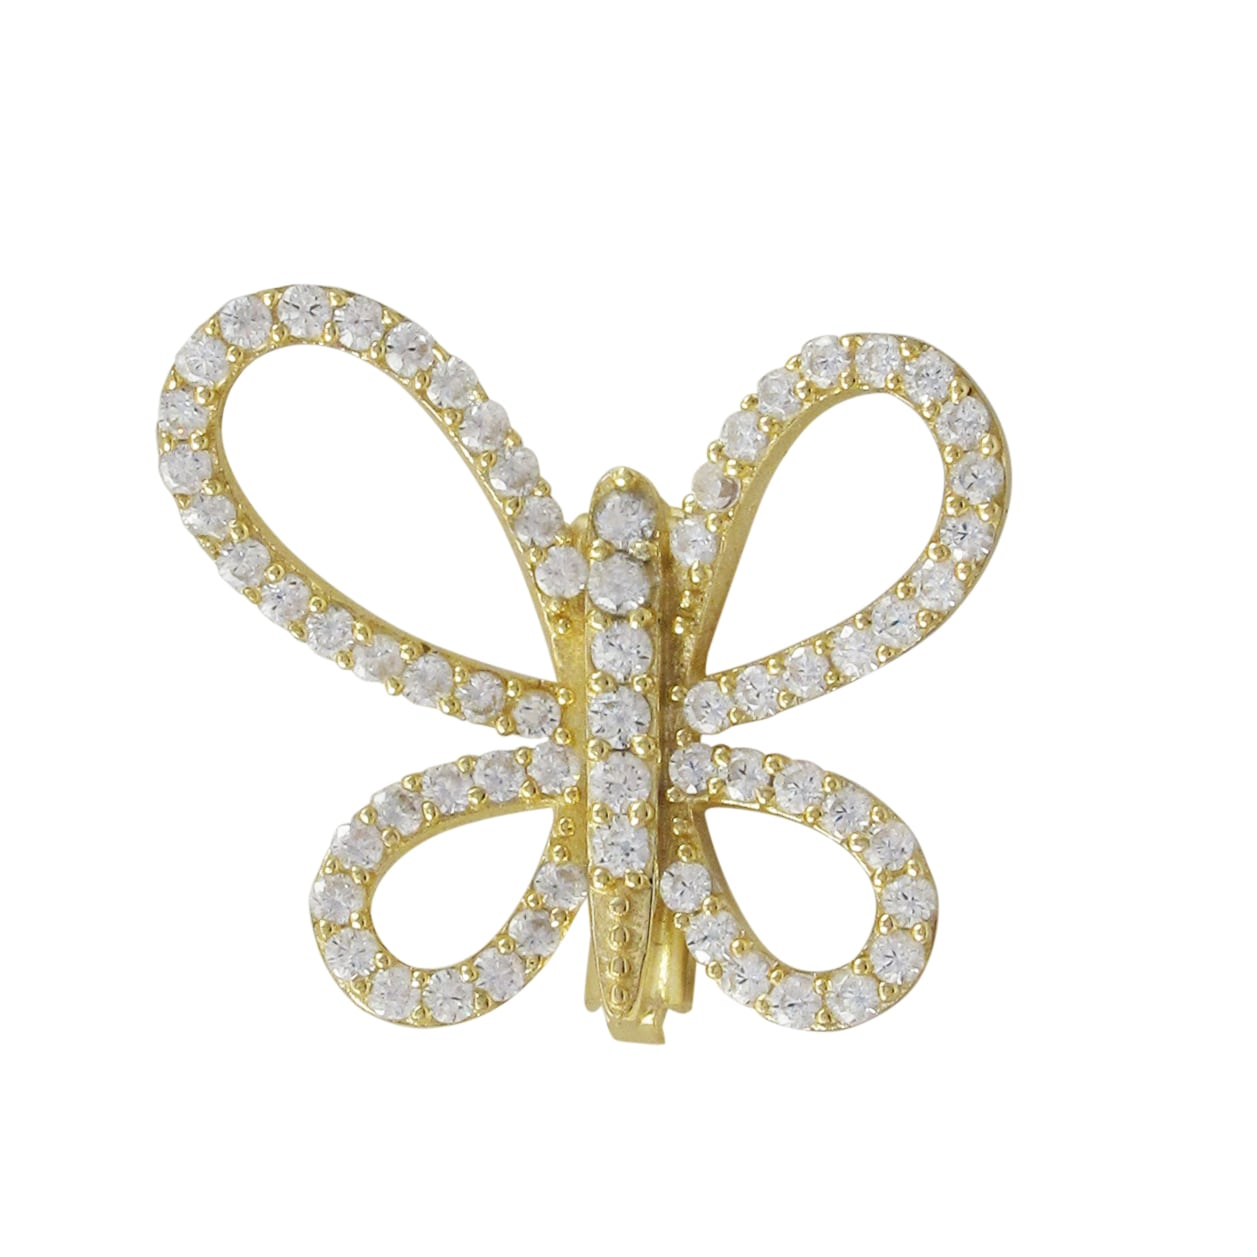 Luxiro Gold Finish Sterling Silver Cubic Zirconia Butterfly Pin Brooch by Overstock